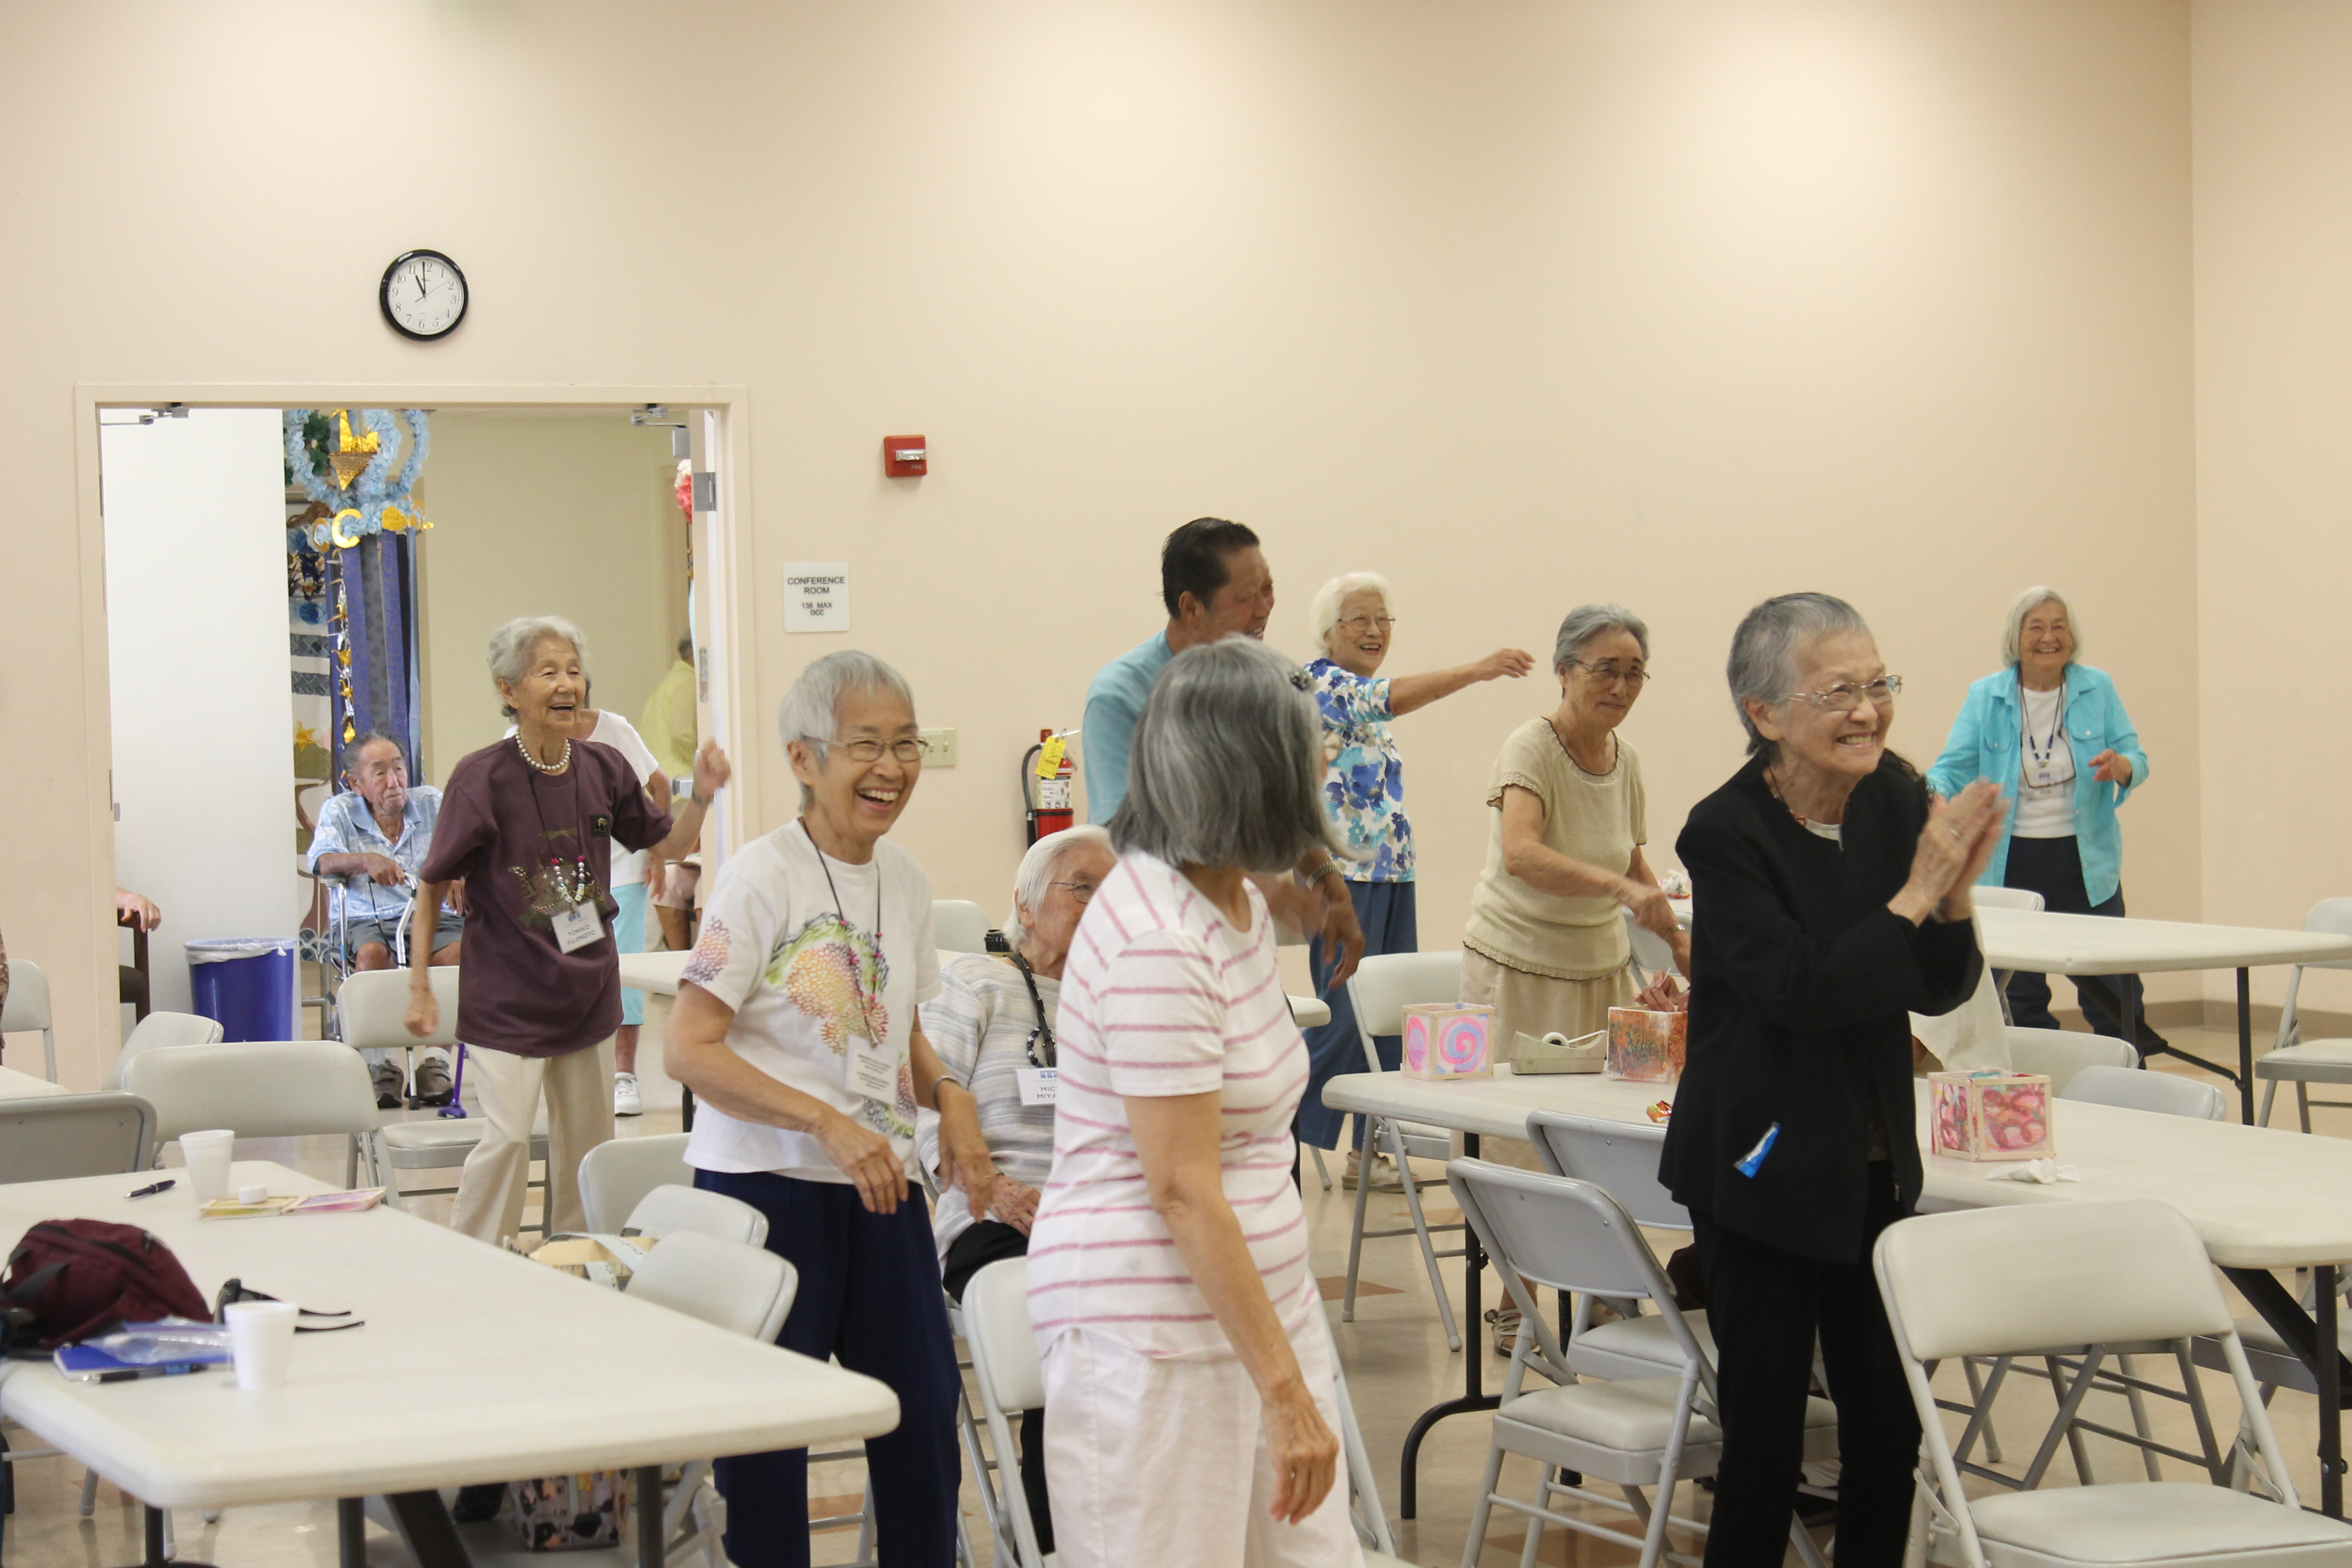 Older Japanese-American adults exercising